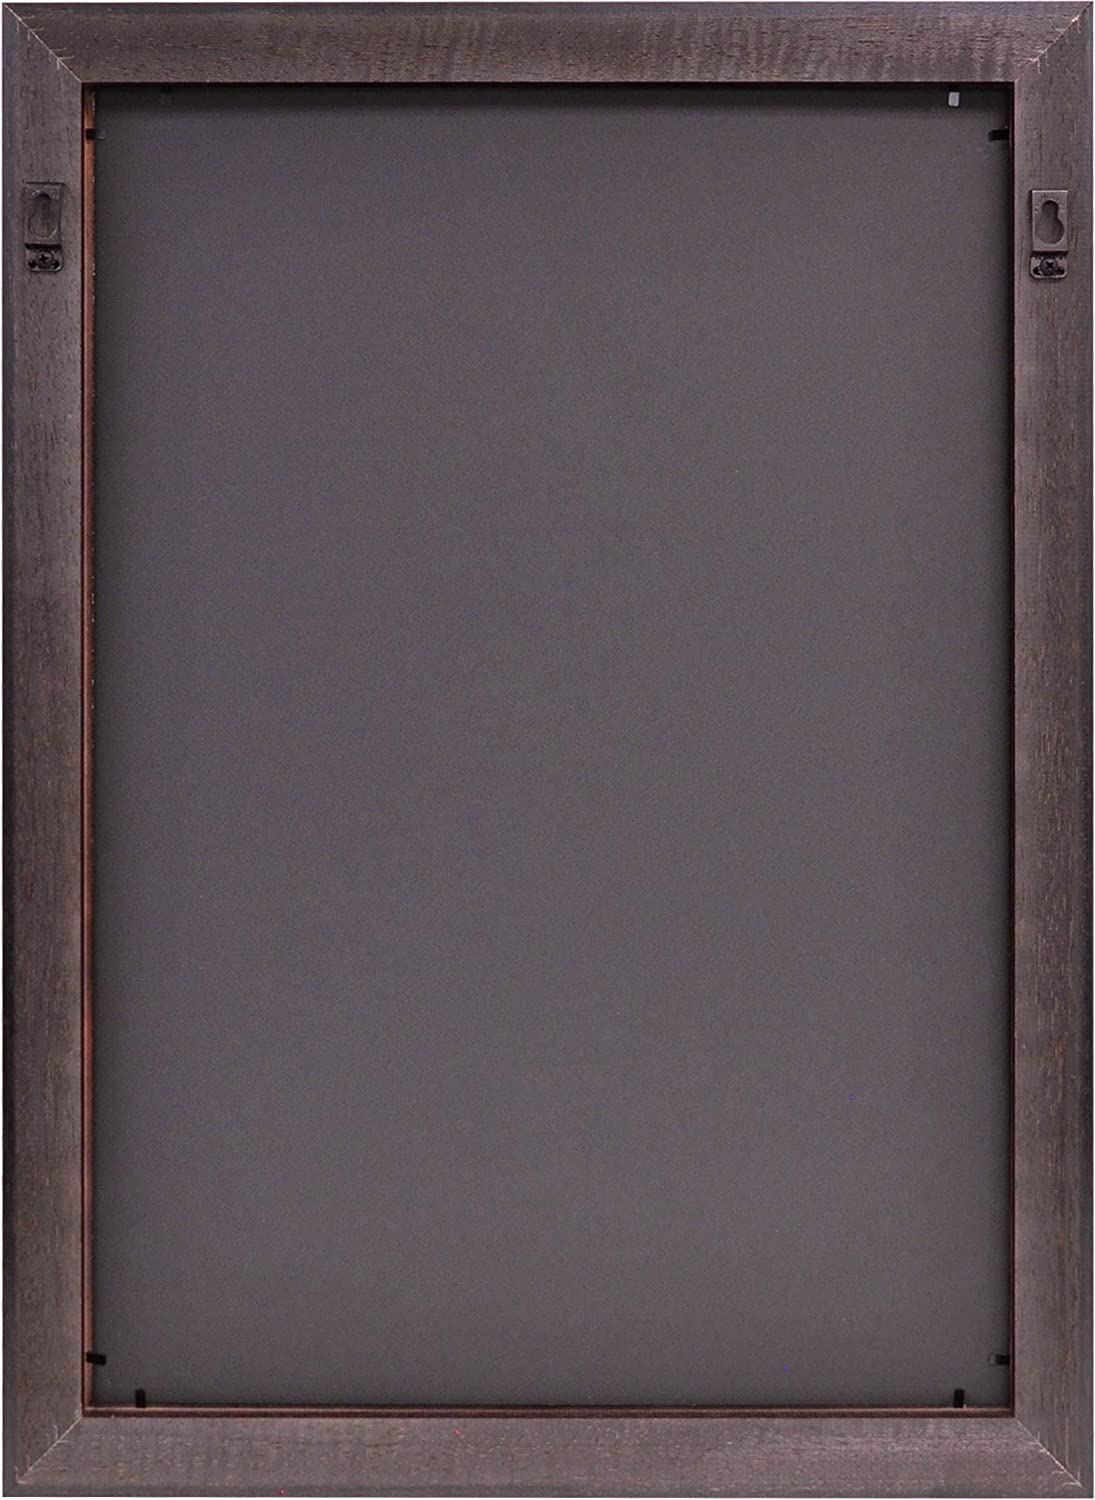 Gold 11.5 x 16 Campus Images FL994LGED University of Florida Embossed Diploma Frame with Lithograph Print